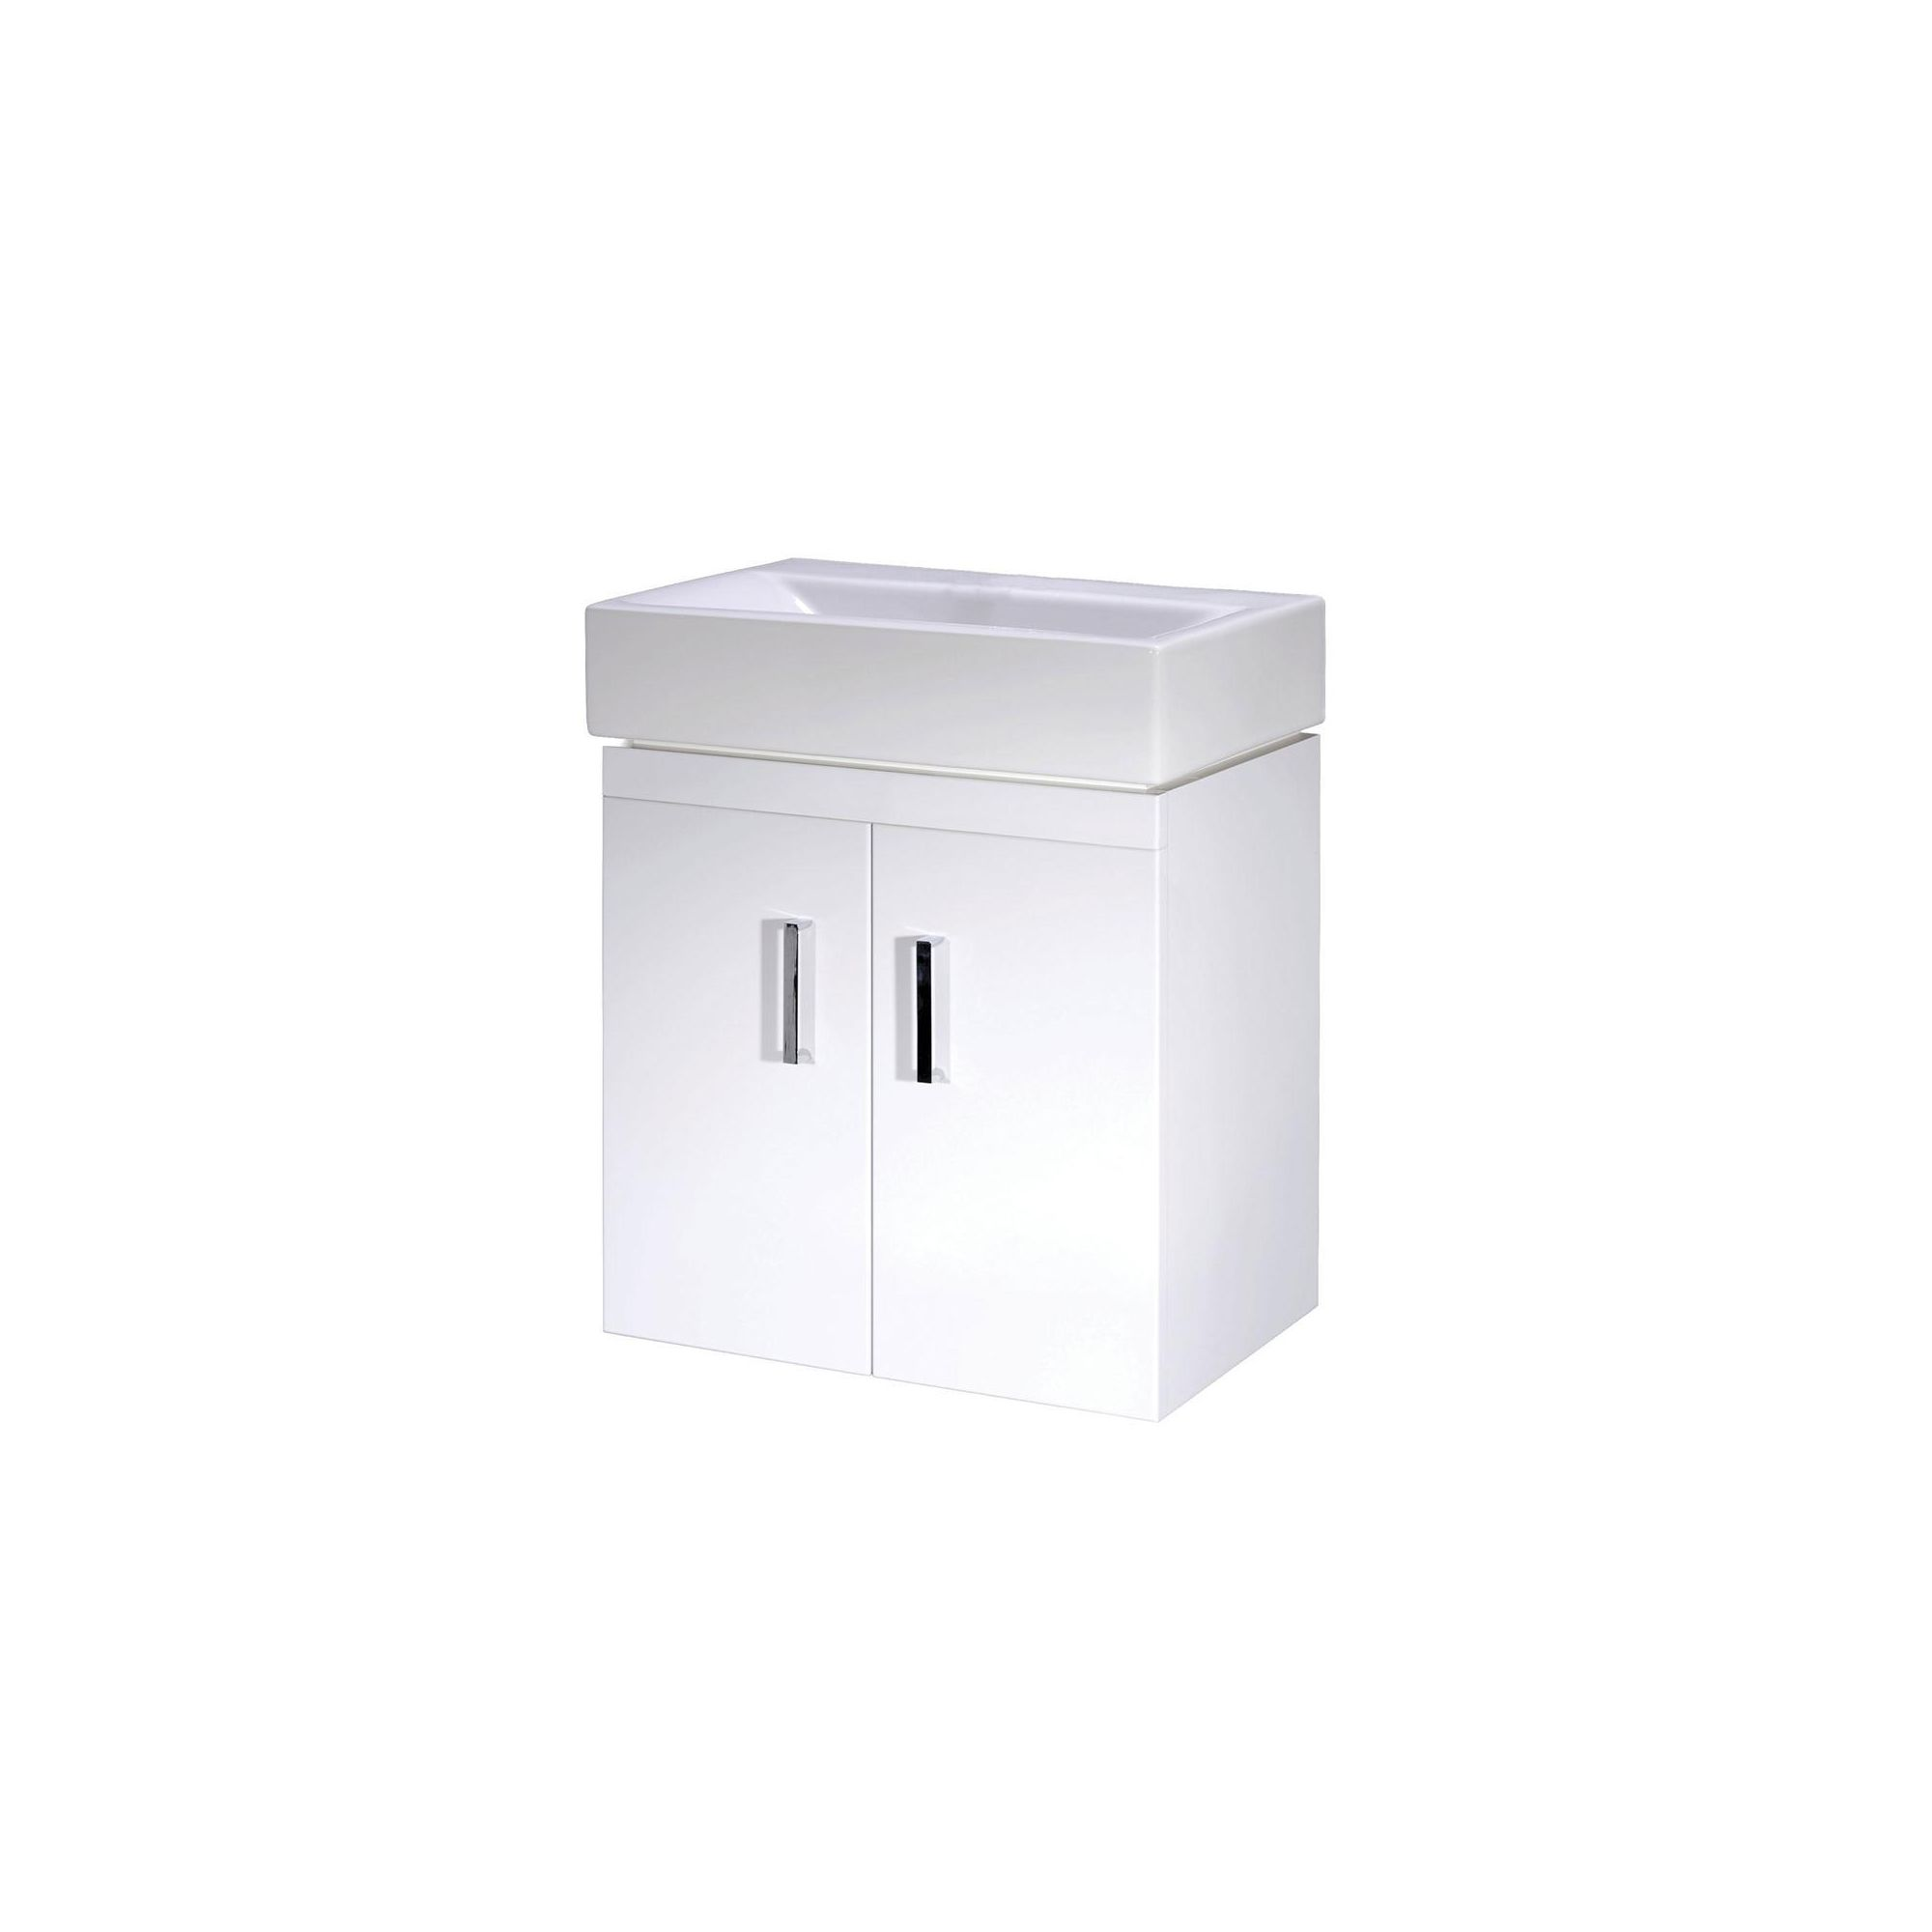 Premier Checkers Minimalist Wall Mounted Basin Vanity Unit White 450mm Deep